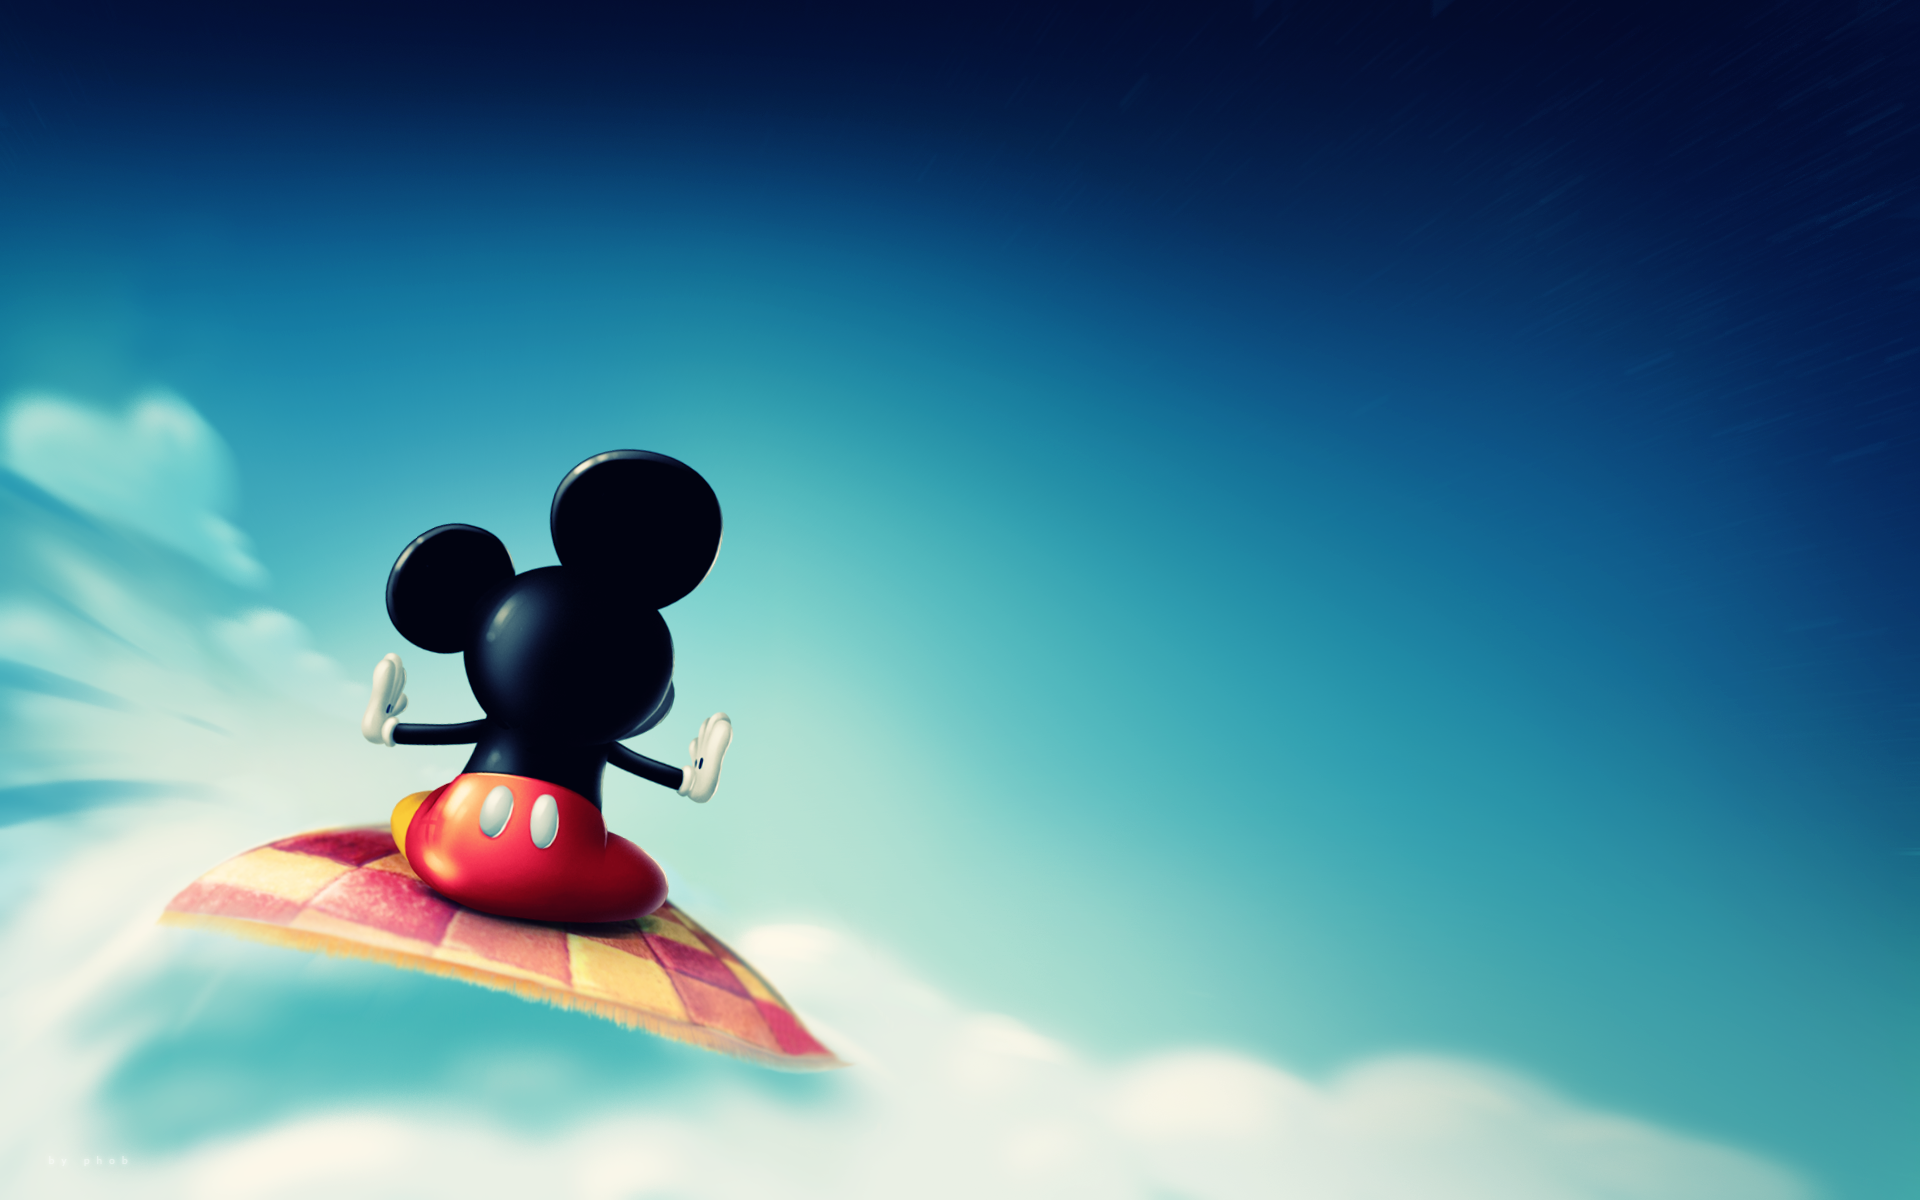 hd wallpaper disney download pixelstalk net